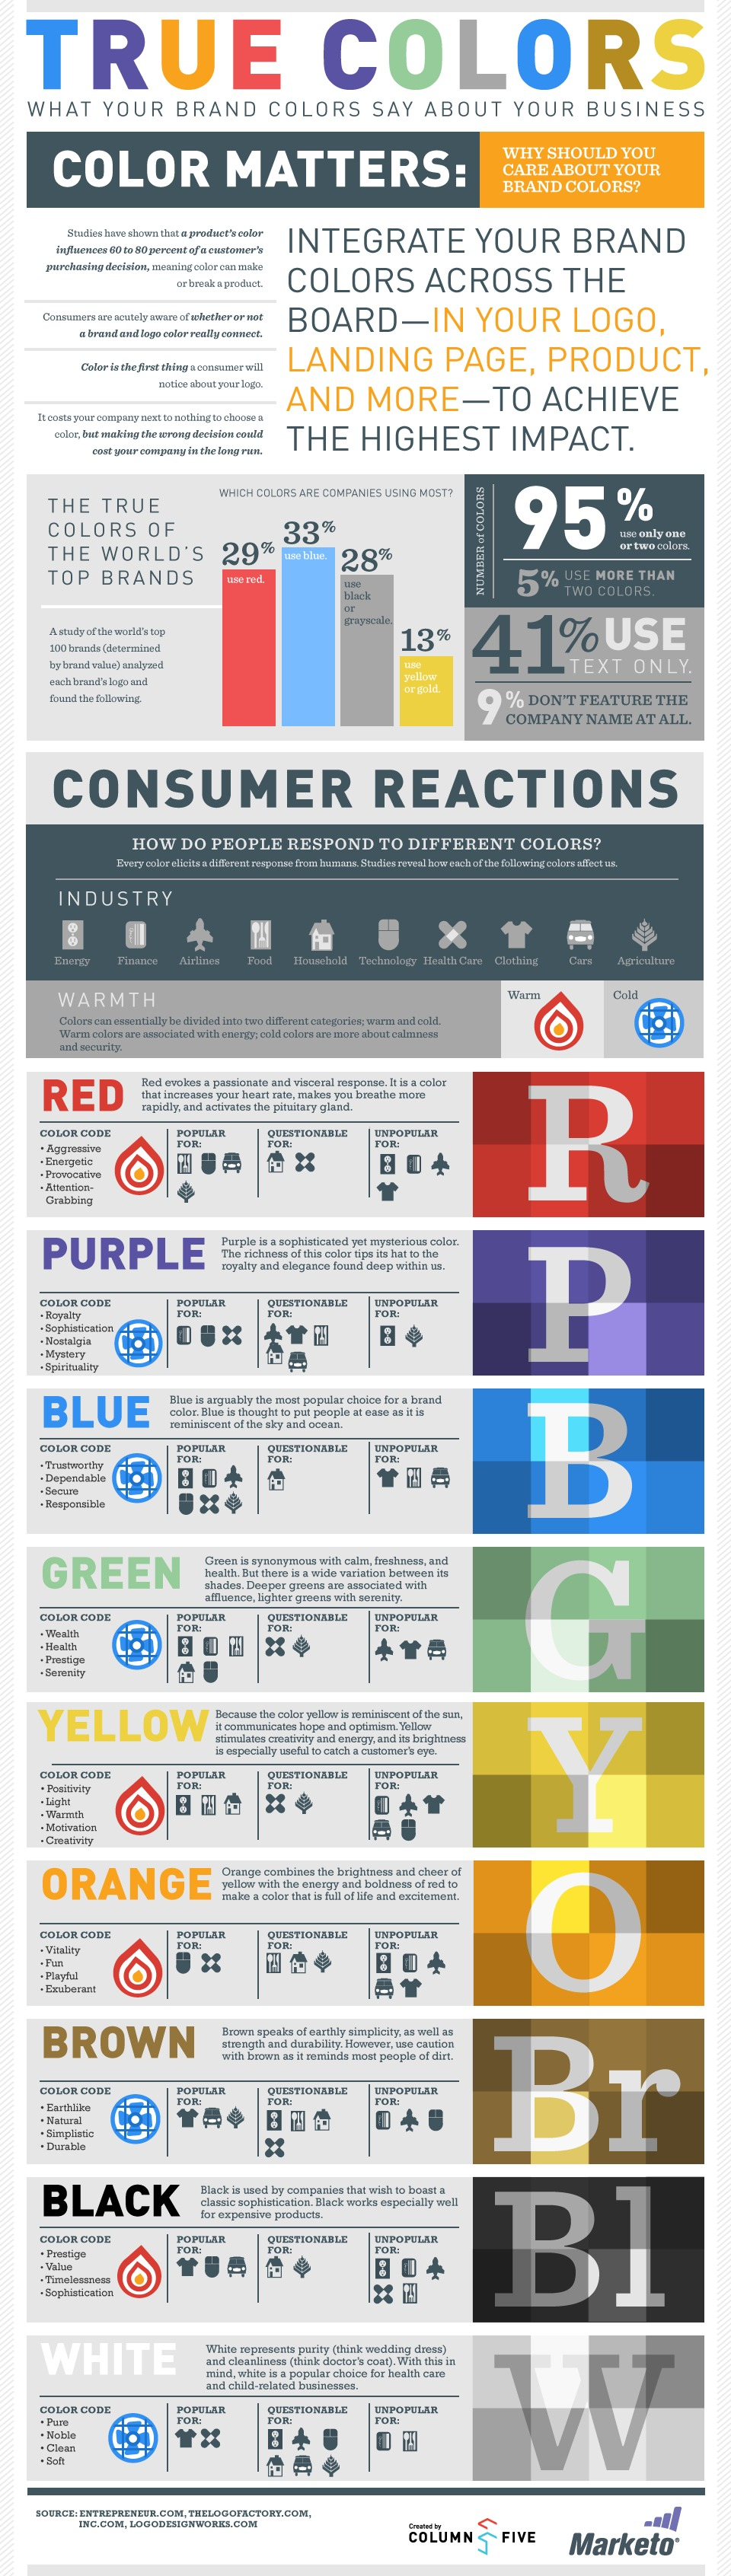 Why Color Matters?